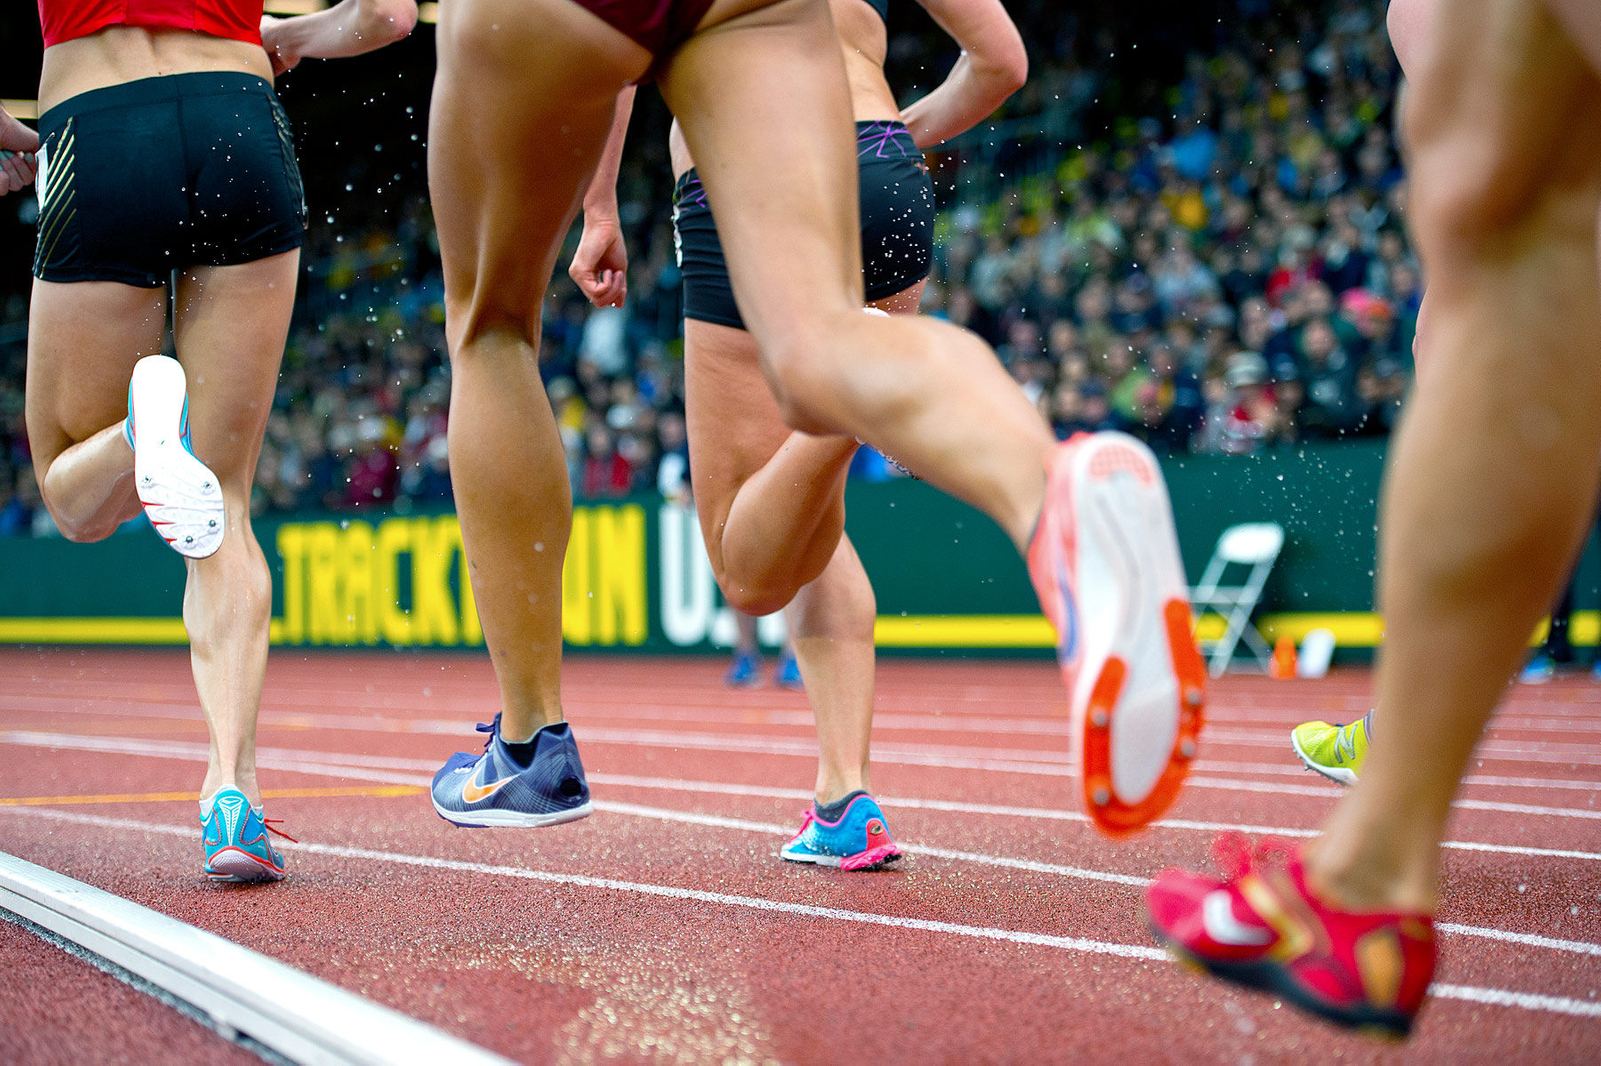 1ustrials_2012_legs_track_and_field_image_jeff_cohen_photo_lb.jpg